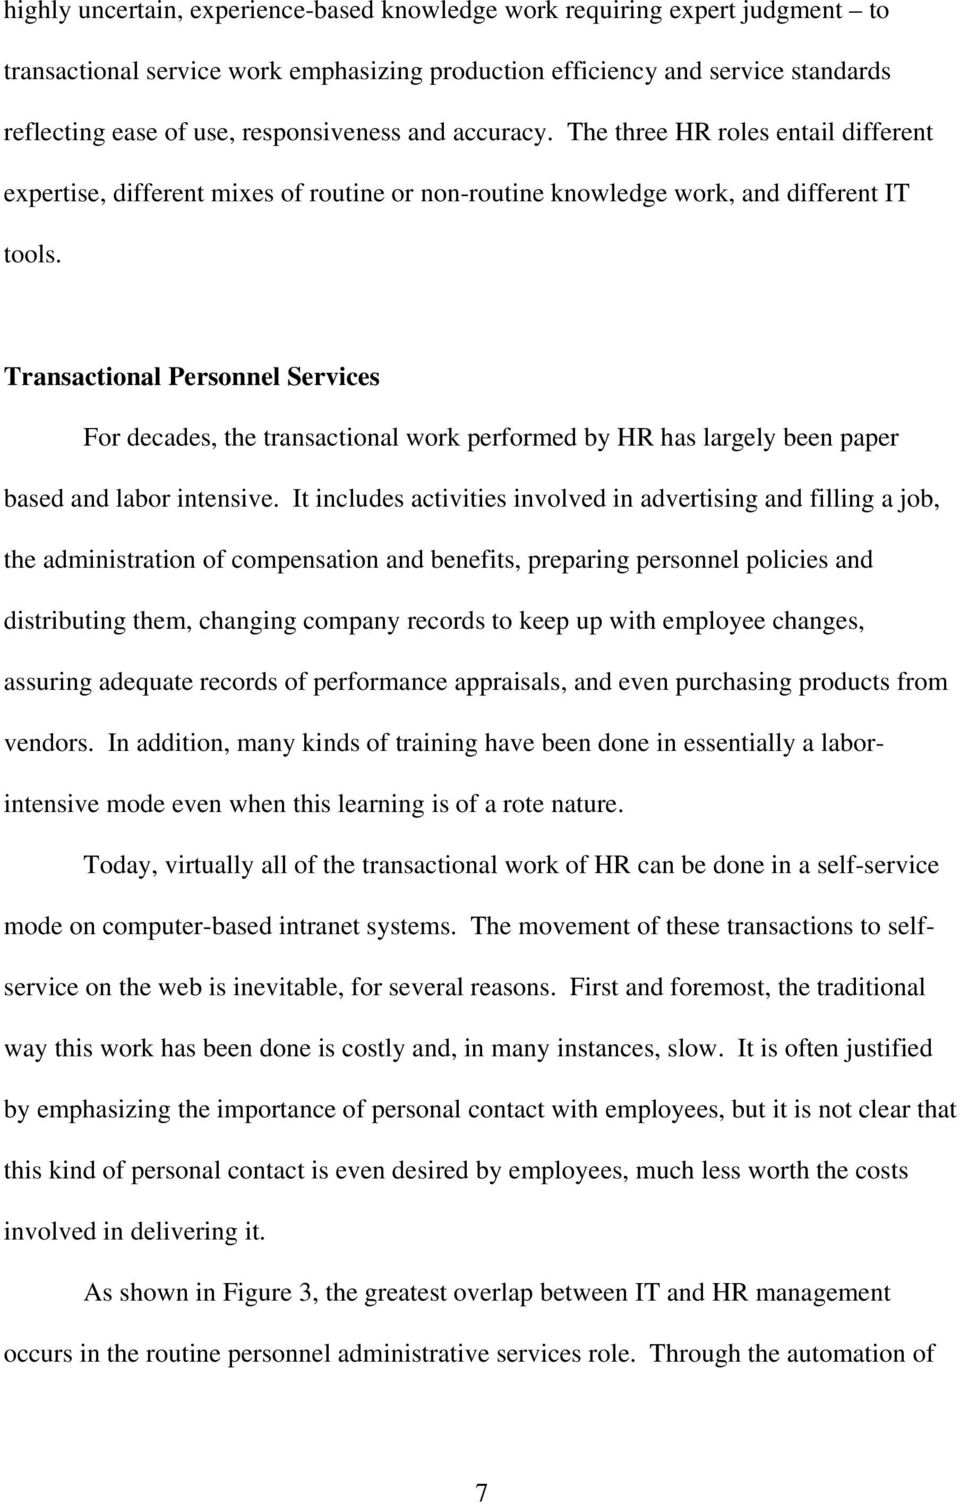 Transactional Personnel Services For decades, the transactional work performed by HR has largely been paper based and labor intensive.